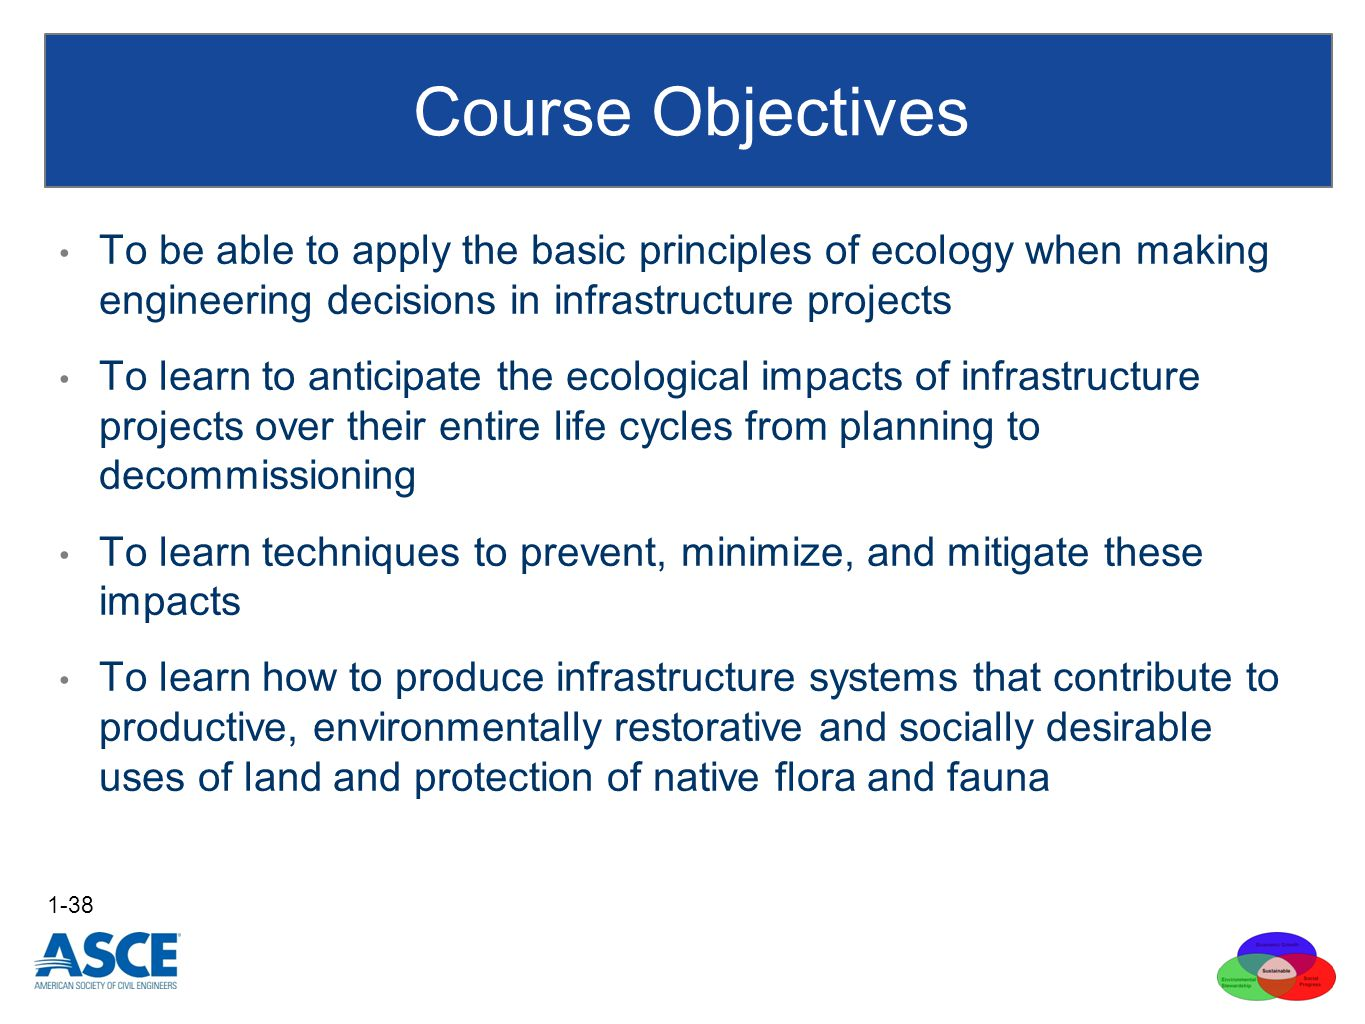 To be able to apply the basic principles of ecology when making engineering decisions in infrastructure projects To learn to anticipate the ecological impacts of infrastructure projects over their entire life cycles from planning to decommissioning To learn techniques to prevent, minimize, and mitigate these impacts To learn how to produce infrastructure systems that contribute to productive, environmentally restorative and socially desirable uses of land and protection of native flora and fauna Course Objectives 1-38